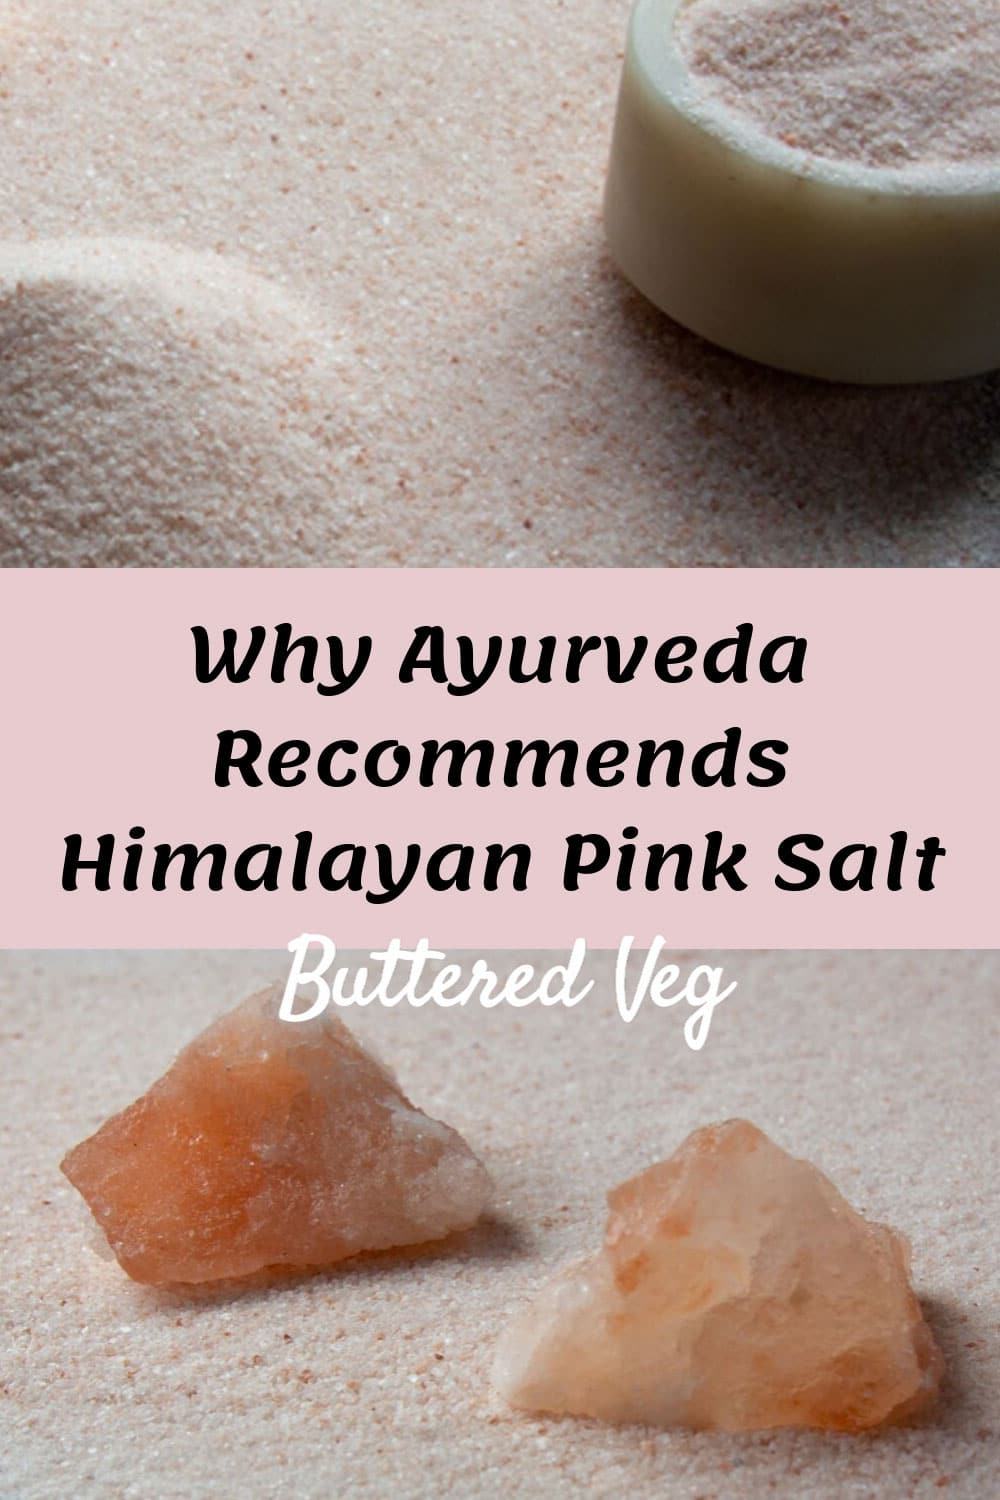 Himalayan pink salt has many unique qualities that make it a better choice than sea salt for everyday use, according to Ayurveda and mind-body cooking. #salt #himalayansalt #healthbenefits #pinksalt #healthy #healthyfood #ayurveda #butteredveg